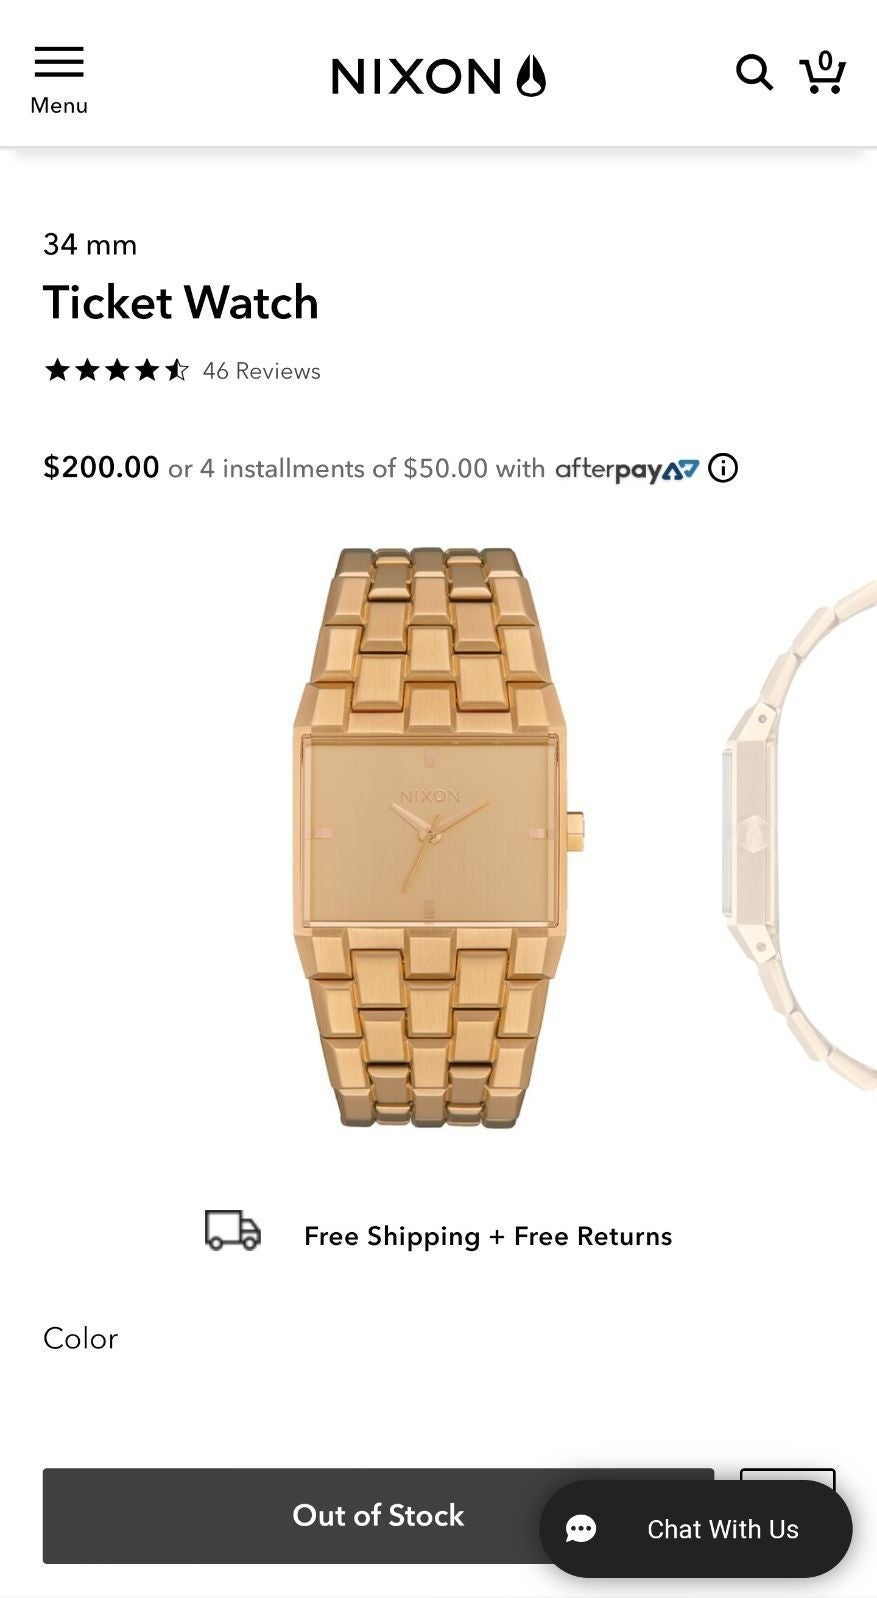 New Nixon All Gold Watch - The Ticket